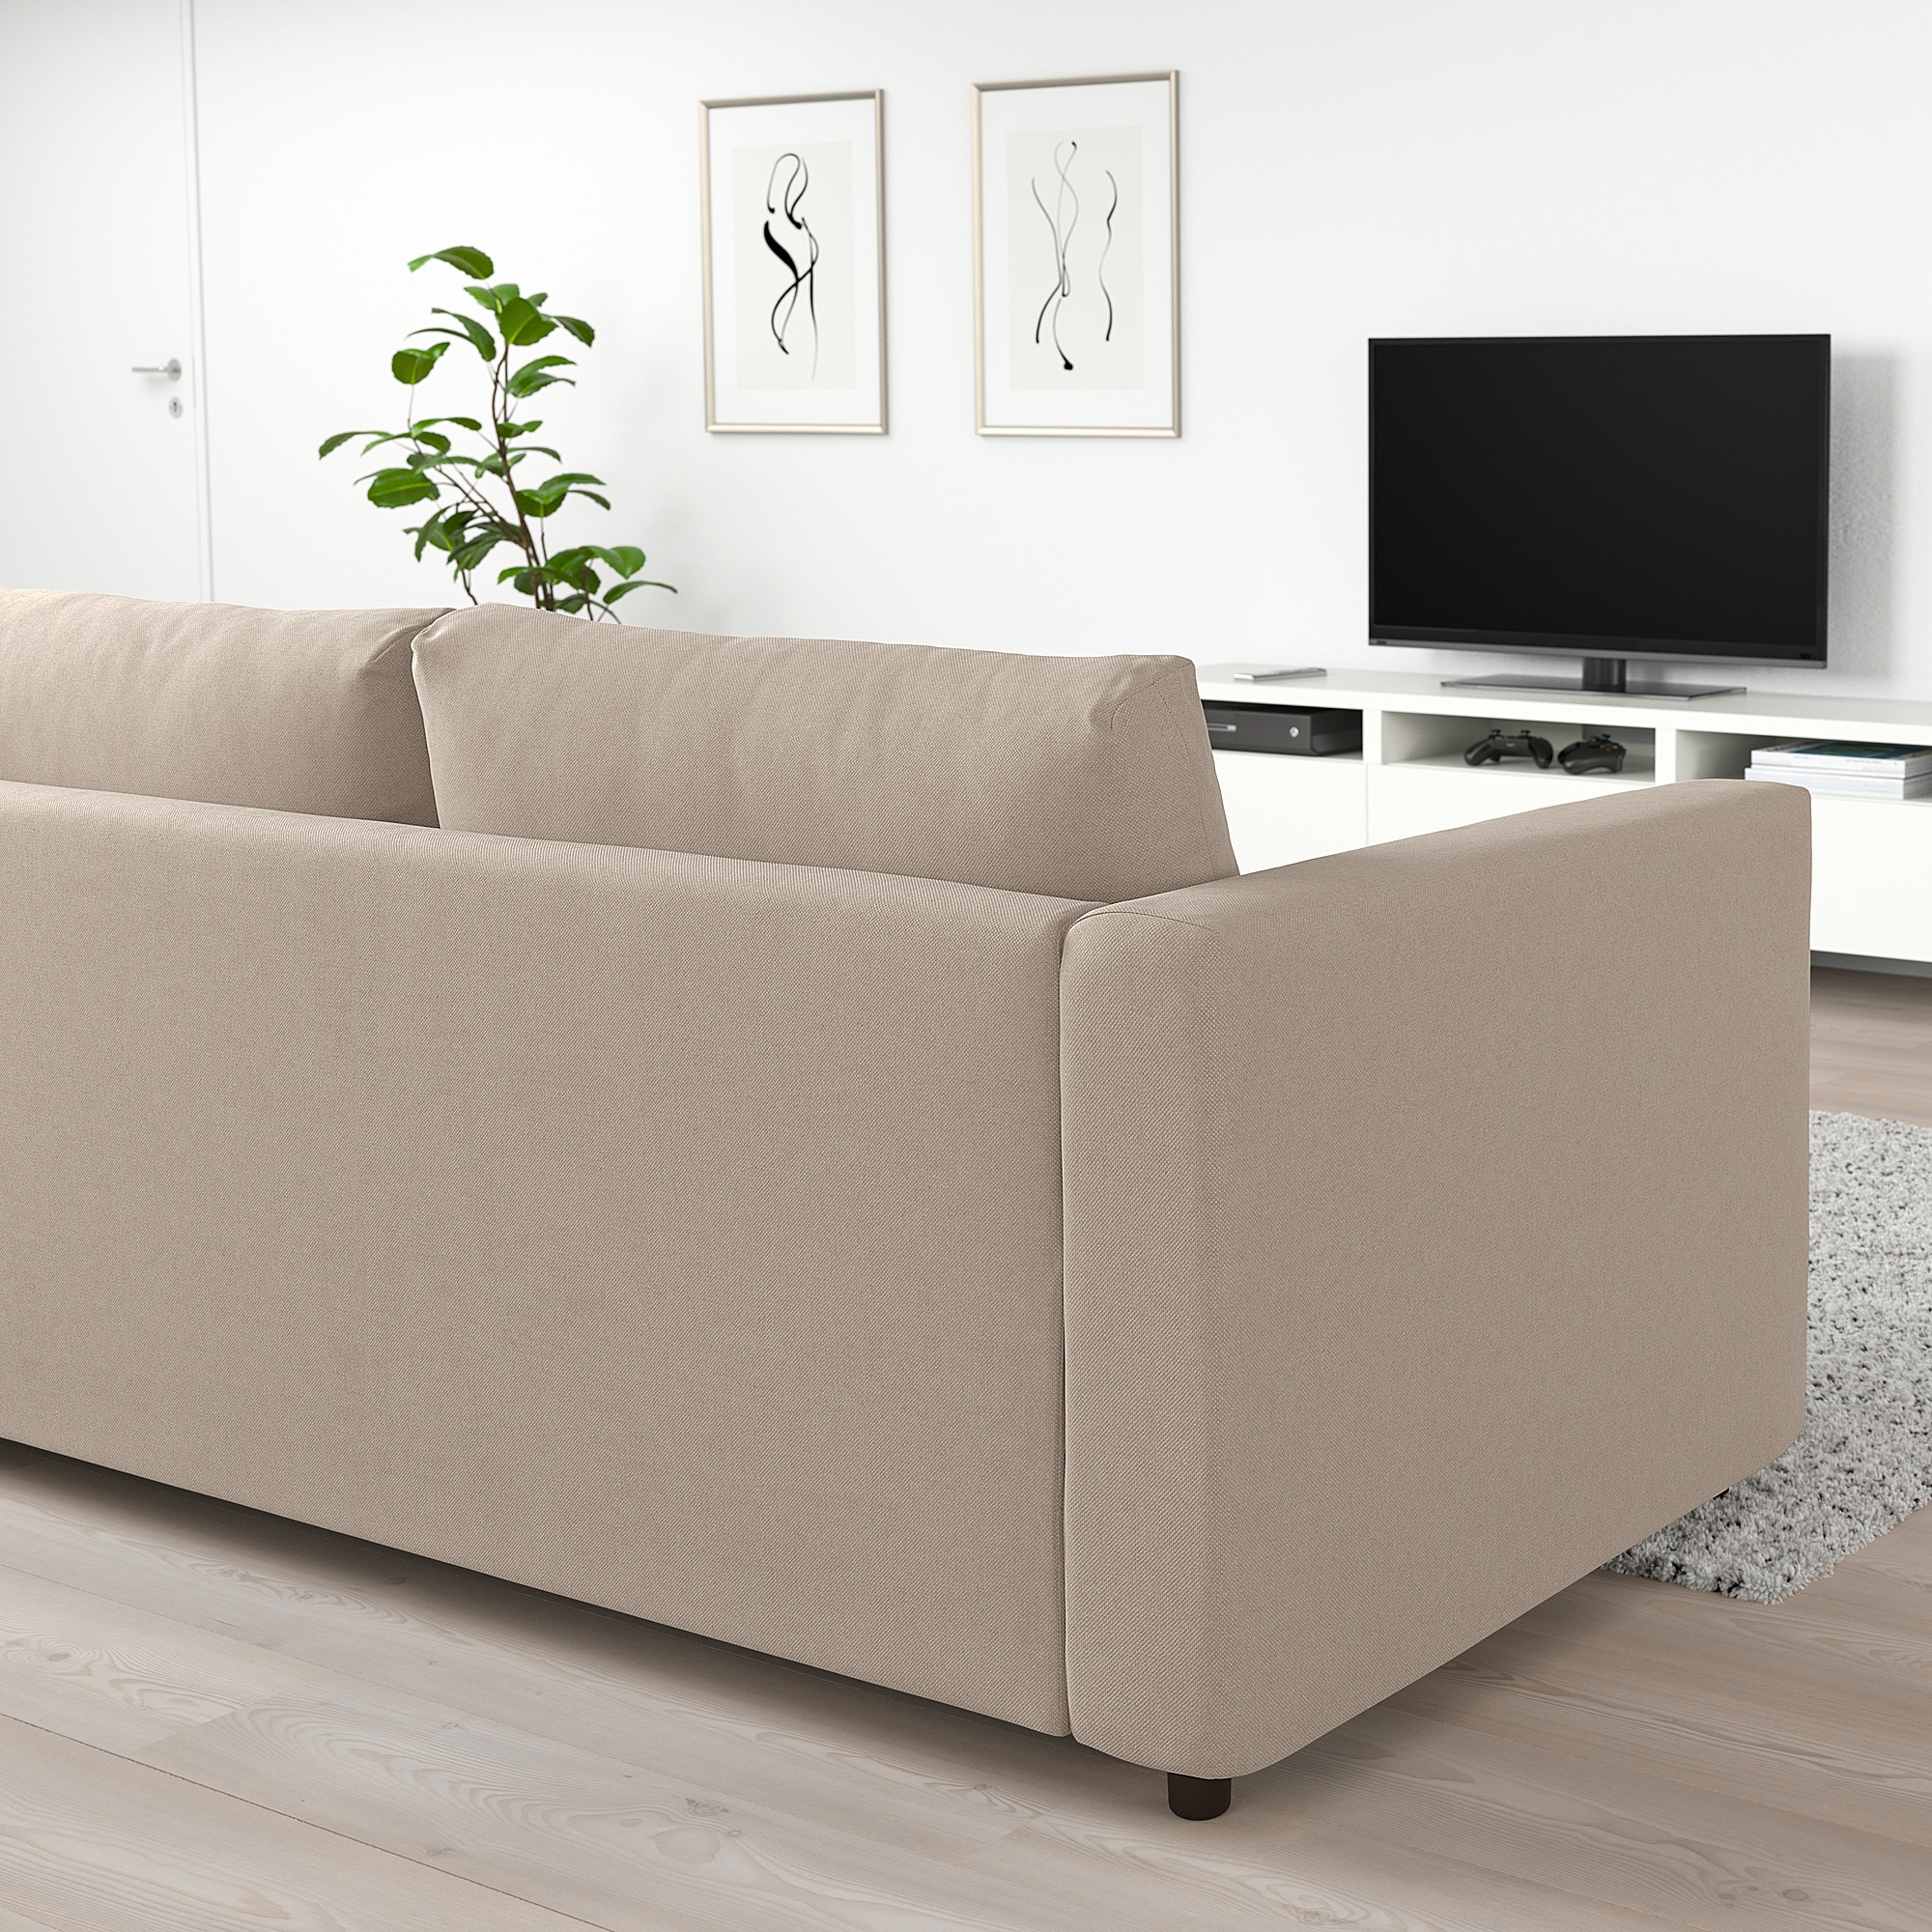 Ikea Vimle Sofabed With Chaise Open End Tallmyra Beige Sofa Bed Frame Sofa Back Cushions Ikea